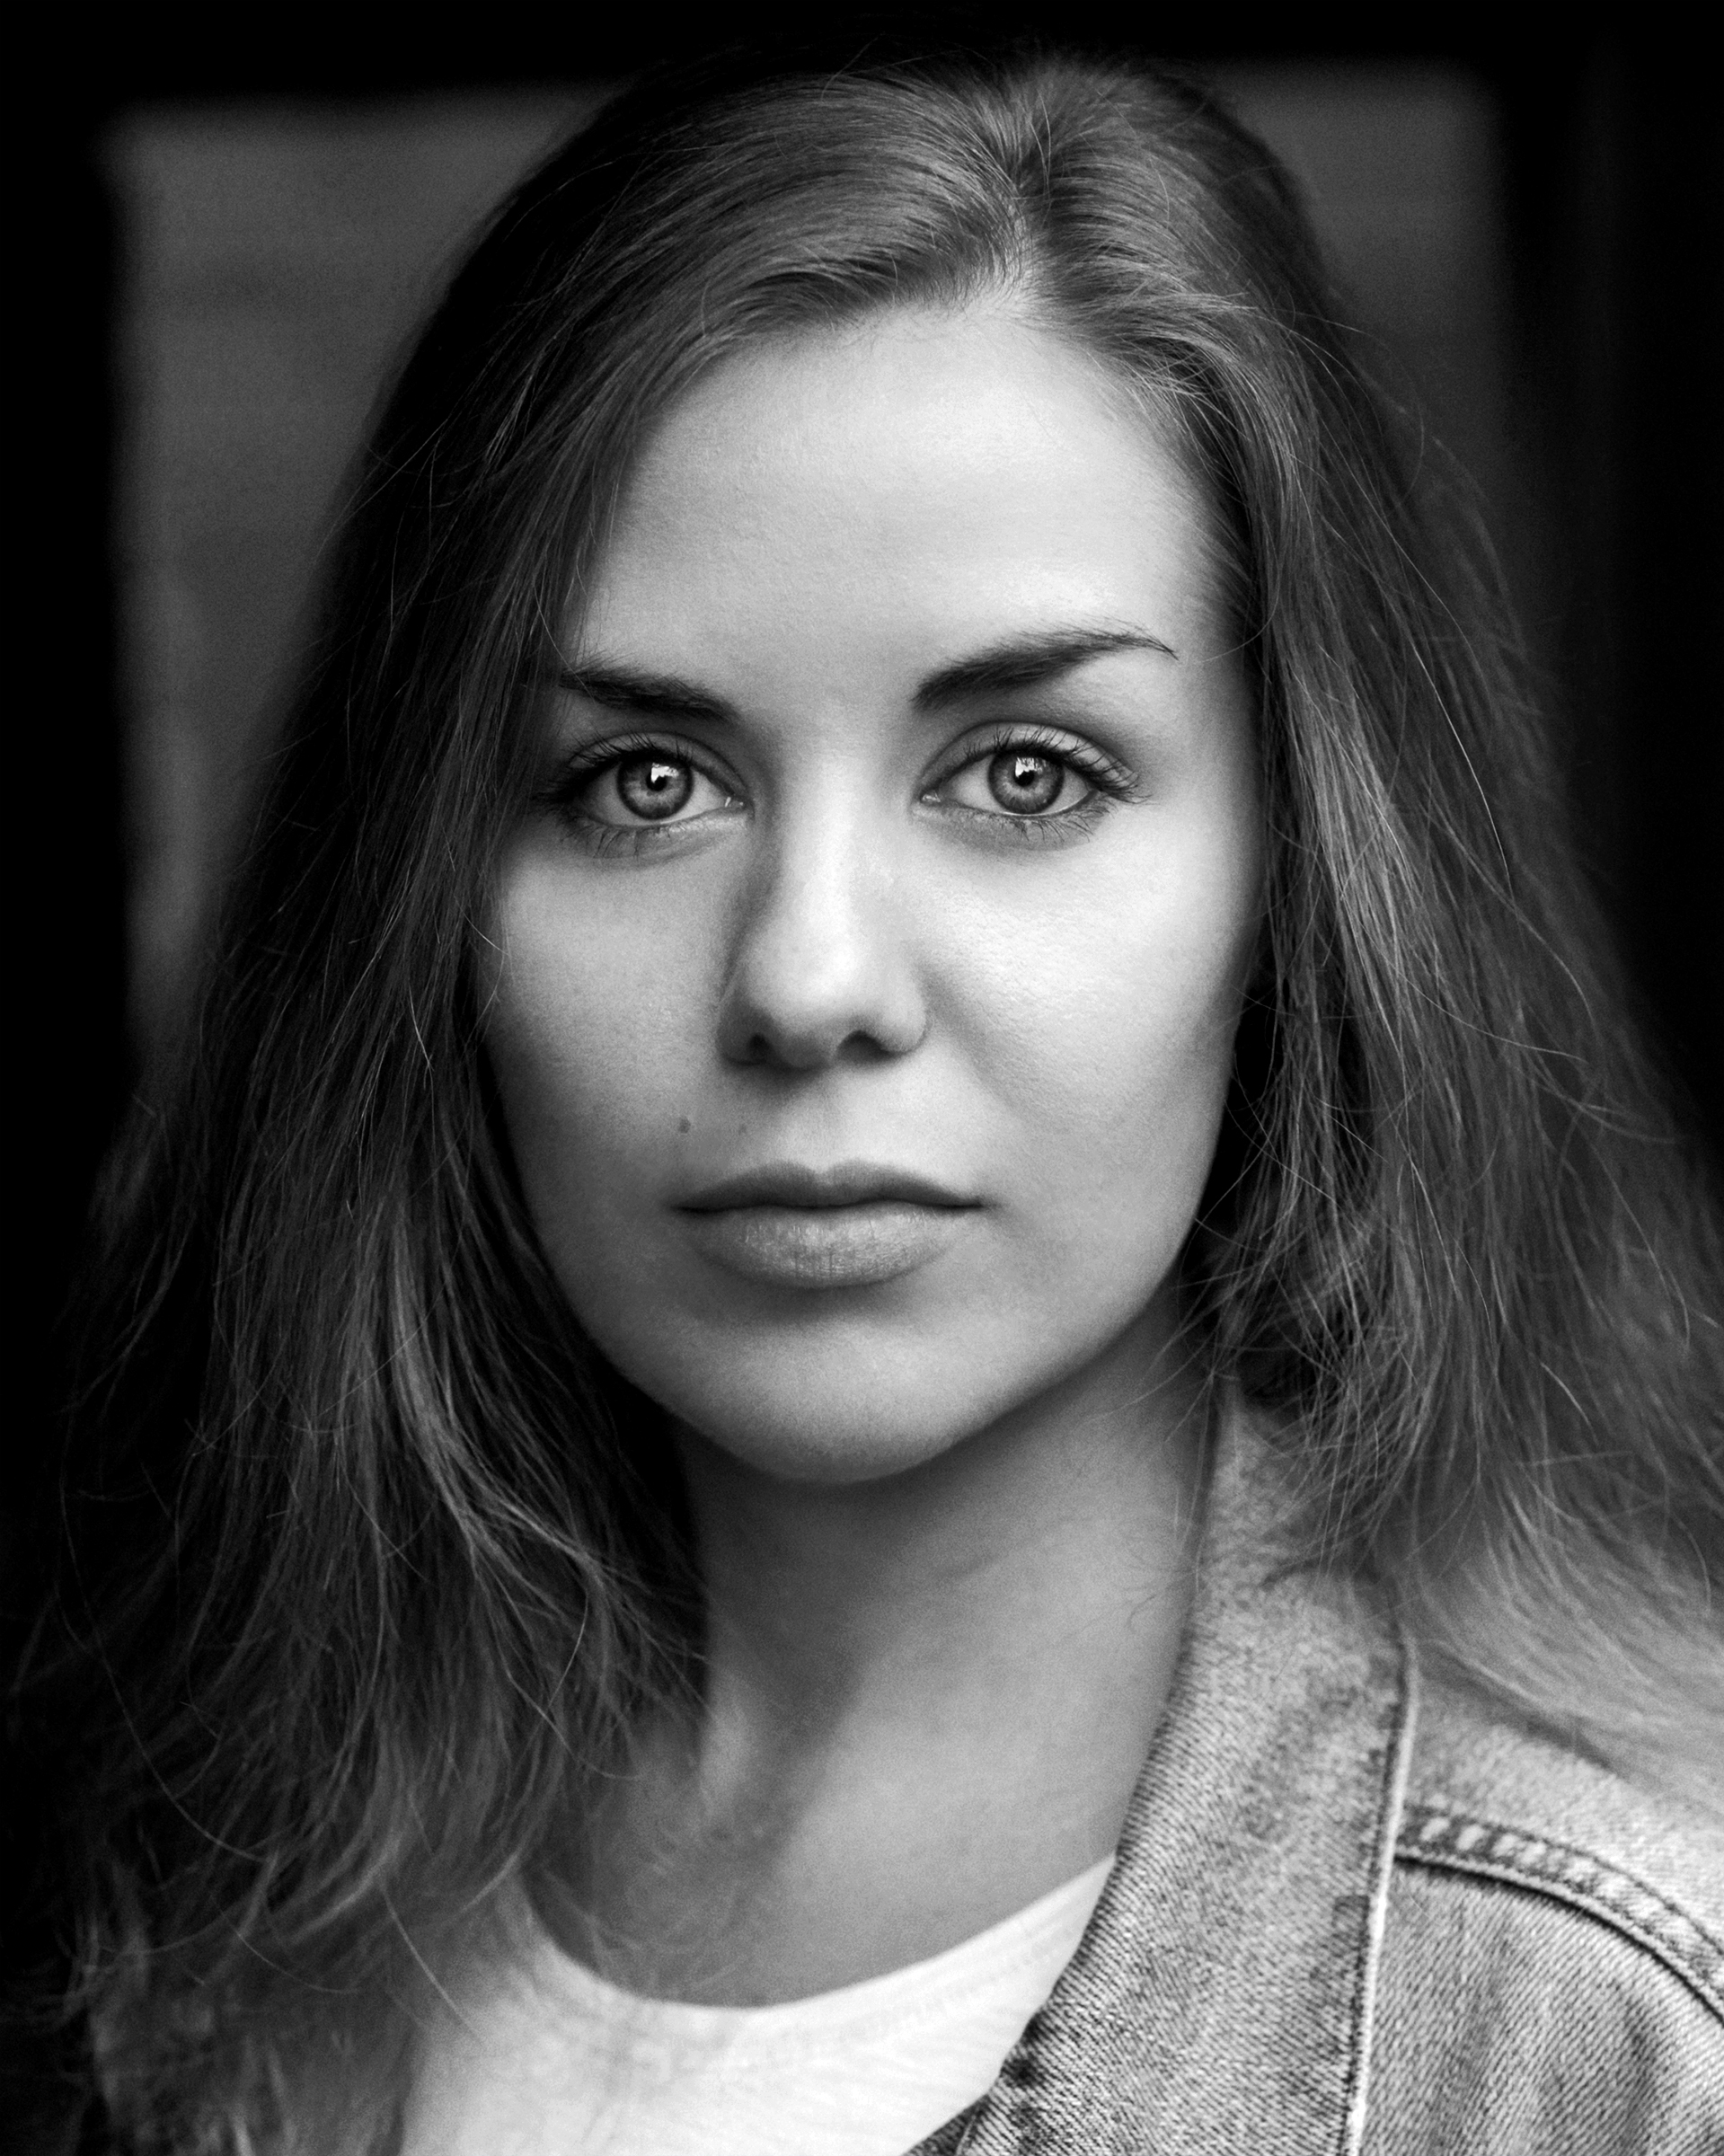 Lisa Ronkowski - Lisa Ronkowski is an Actress from Yorkshire working in London. She is Artistic Director of Off The Wall Theatre Company and member of Equity UK Trade Union and The Actors Centre. Lisa has a particular love and interest in gritty hard-hitting dramas and social documentaries.